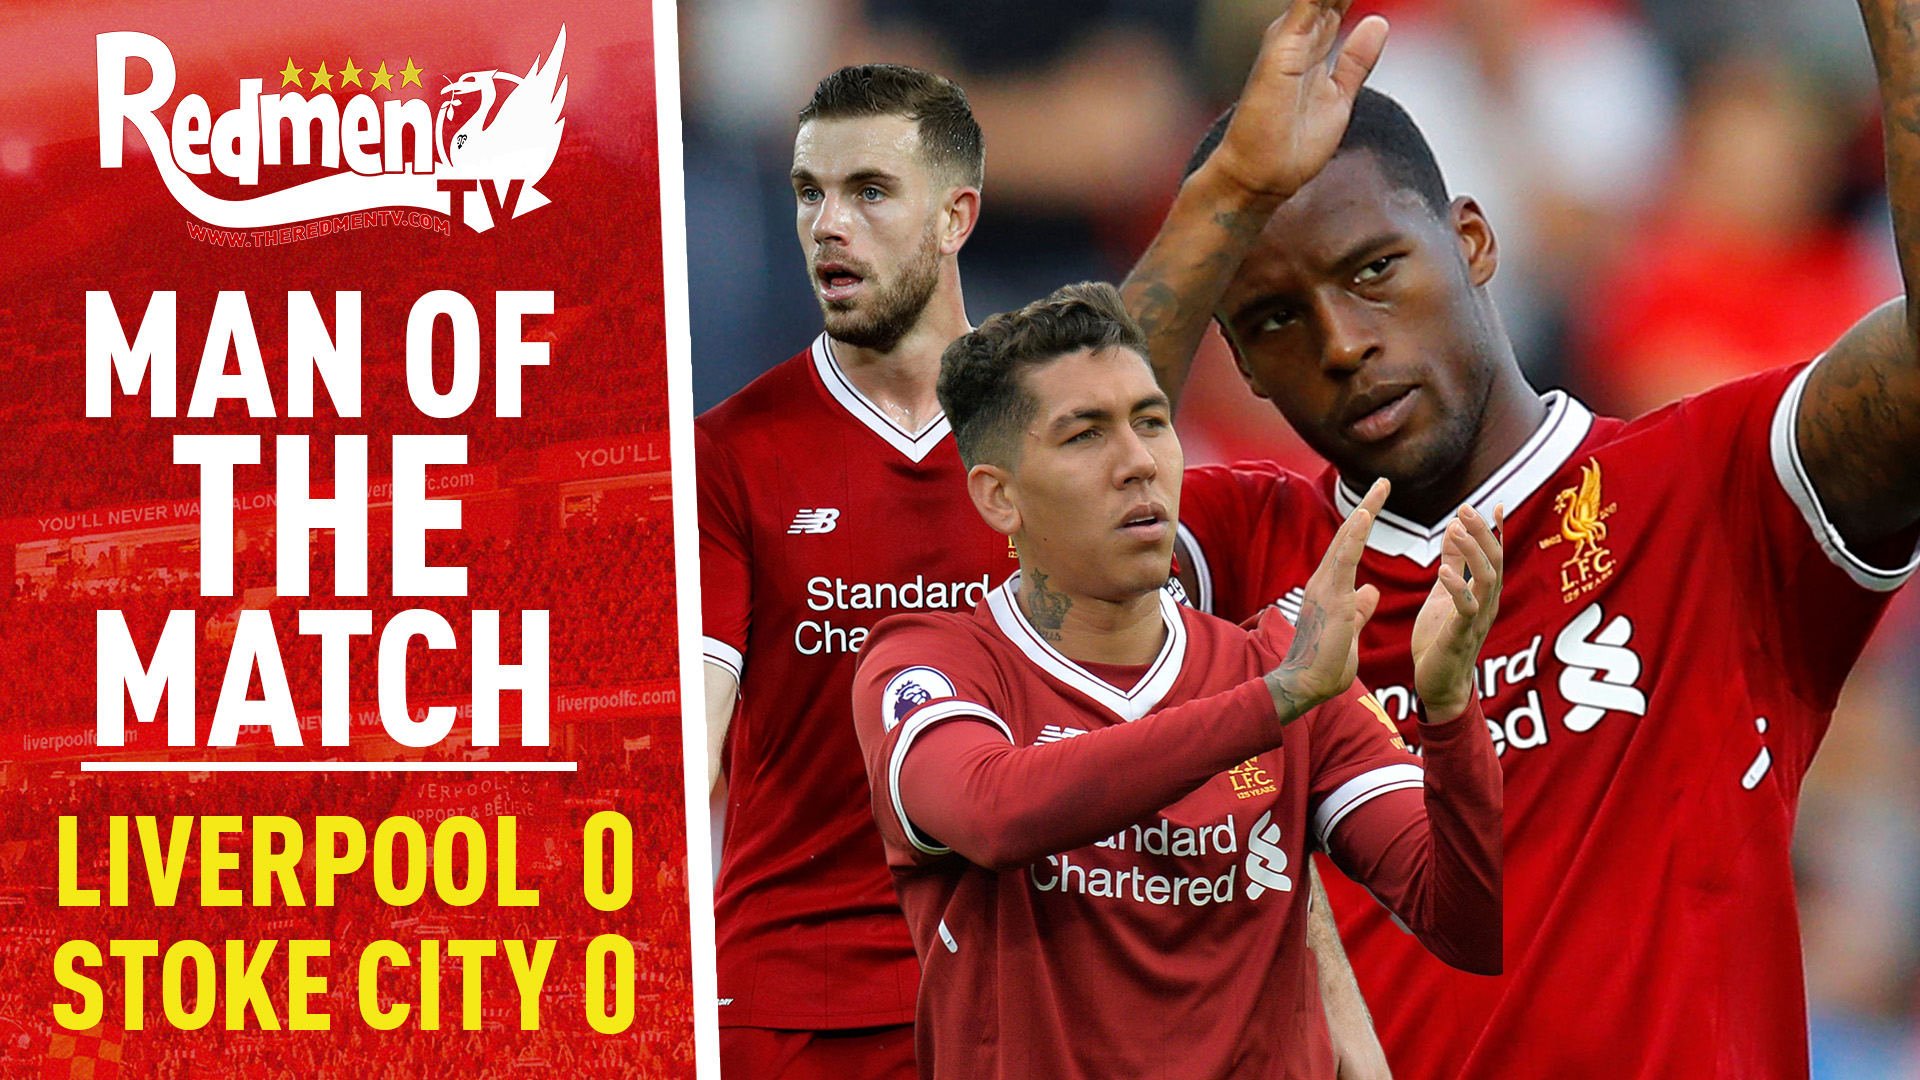 Liverpool 0-0 Stoke | Man of the Match Video Podcast - The Redmen TV